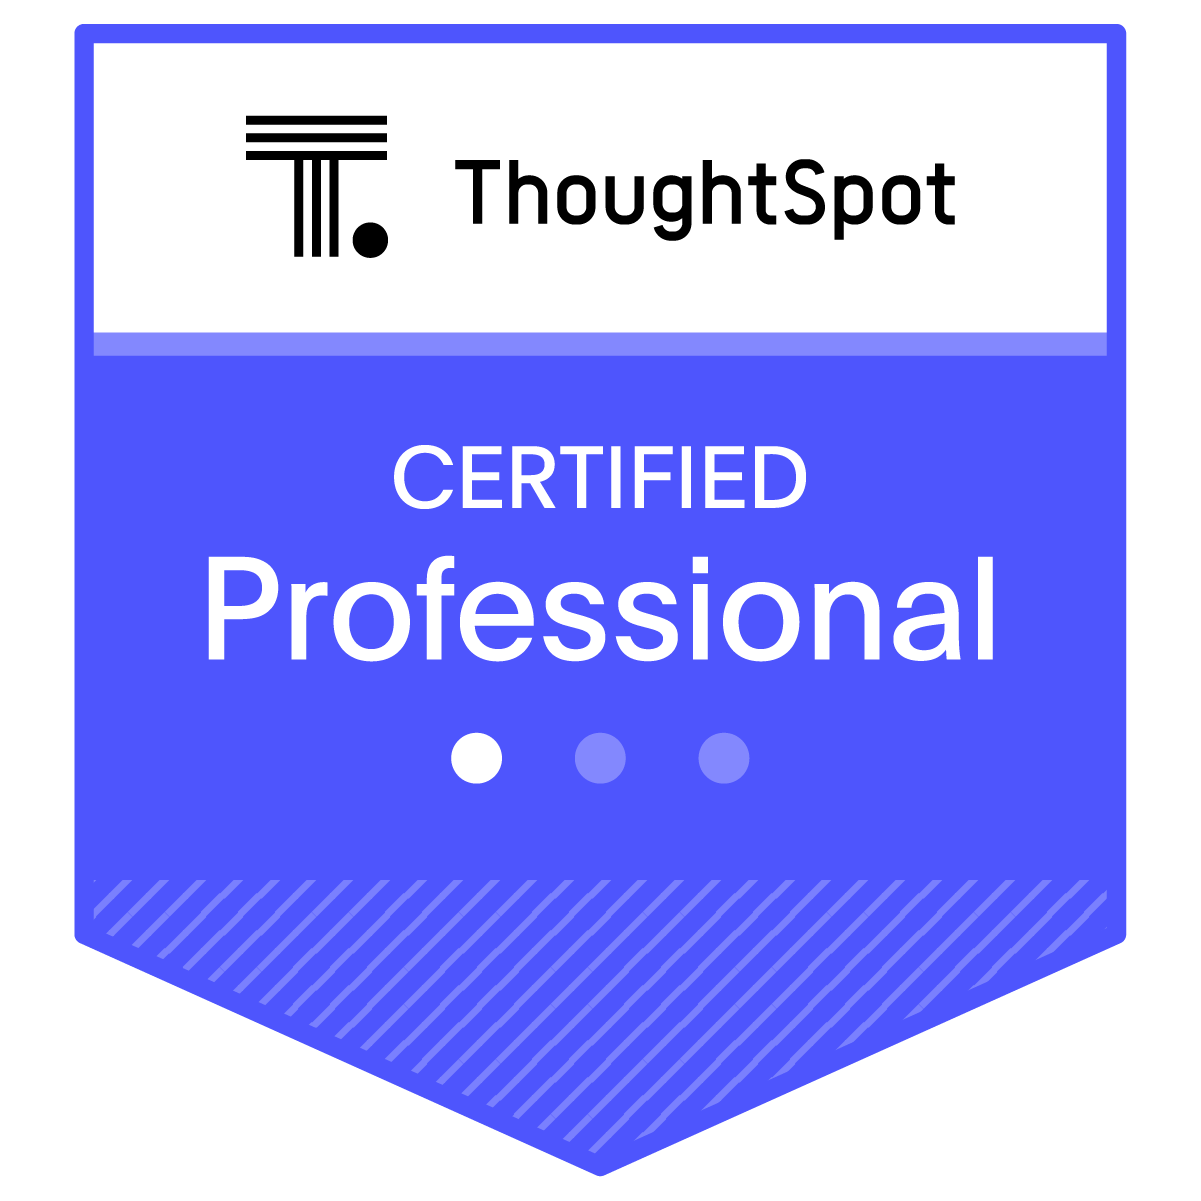 Certified ThoughtSpot Professional